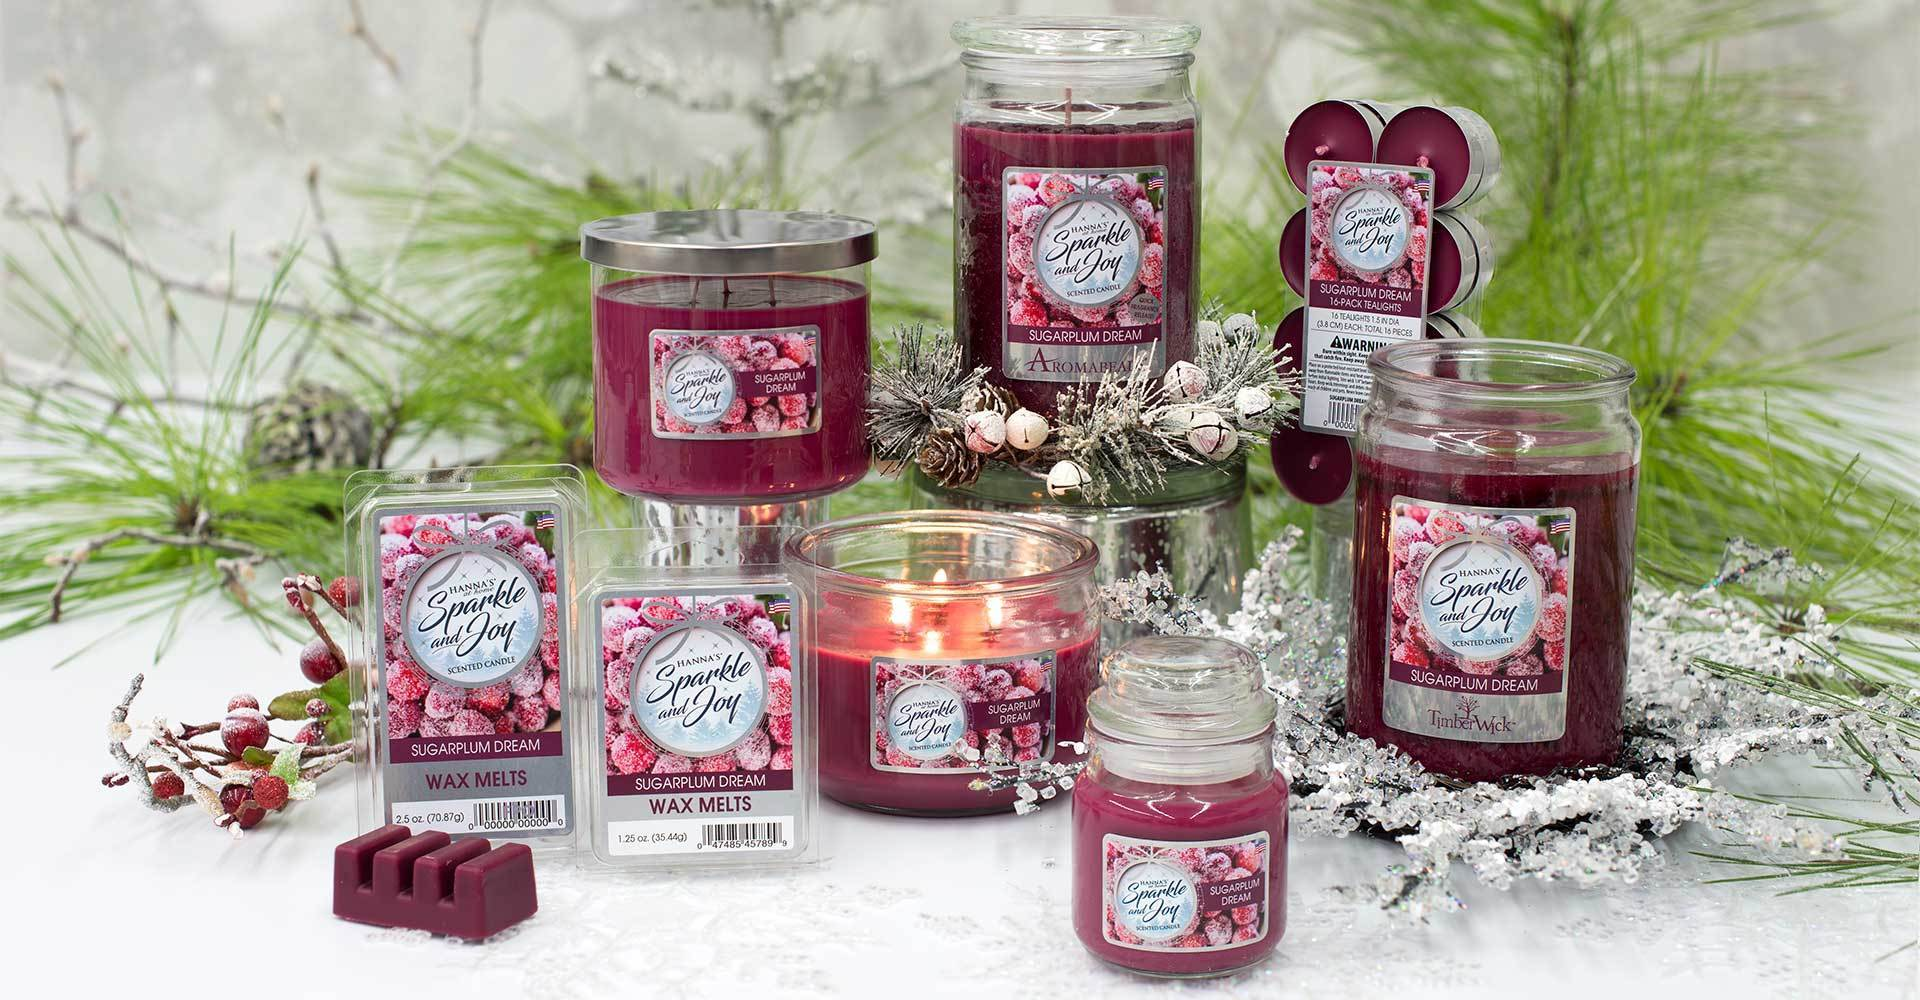 Timberwick Candles with woodwicks